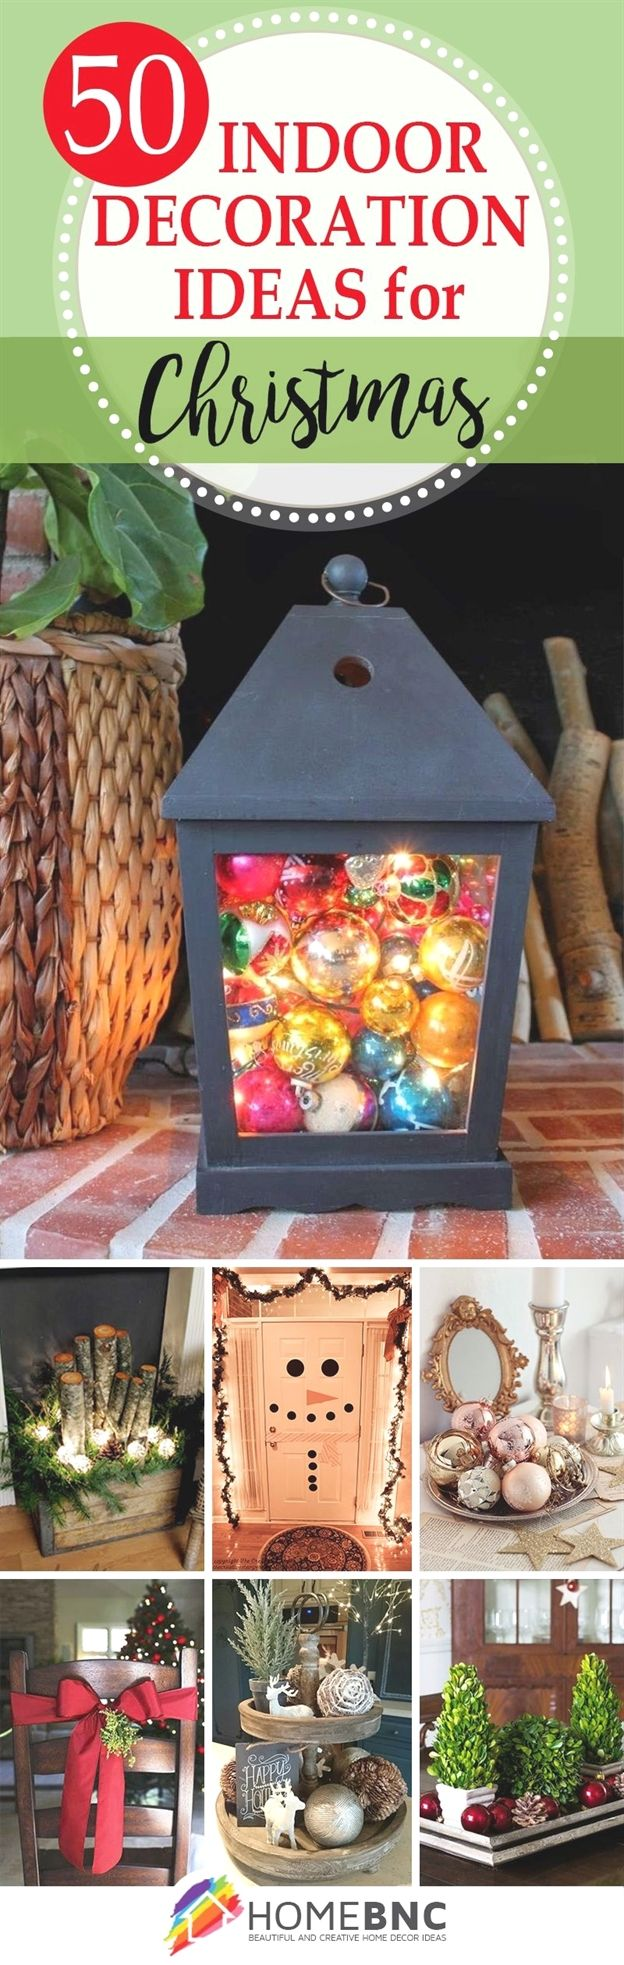 50 Indoor Decoration Ideas for Christmas that will Spark